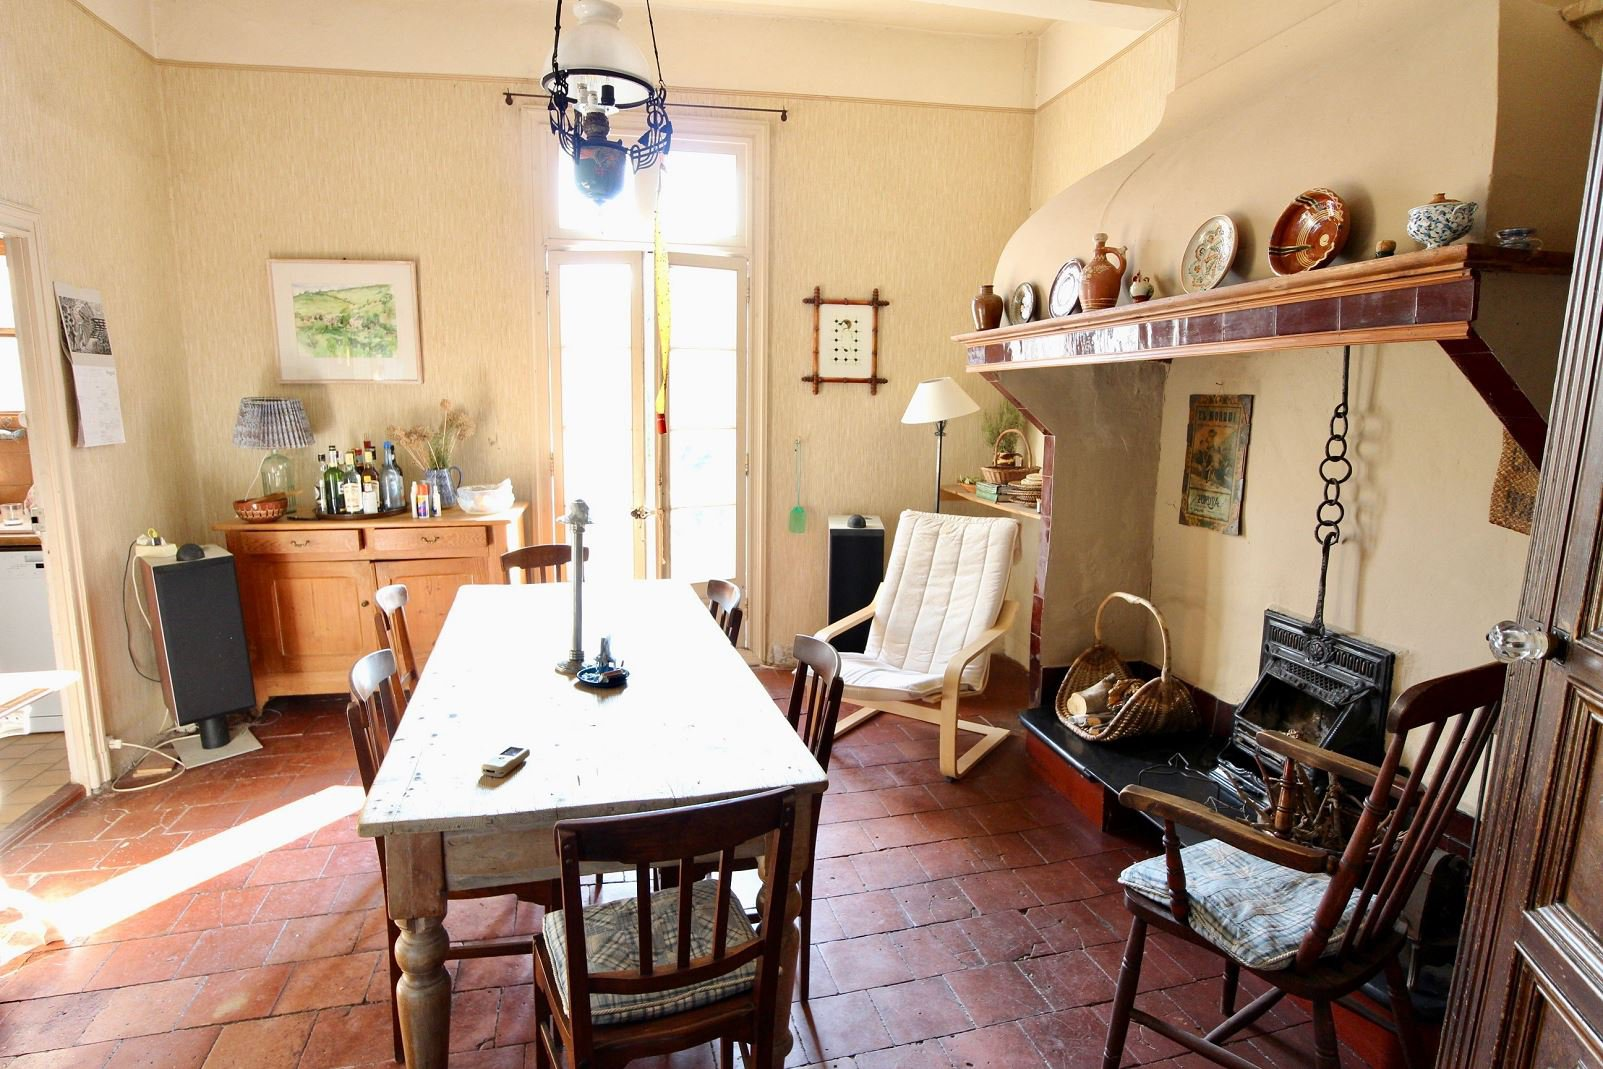 Spectacular Maison de maître in a charming village